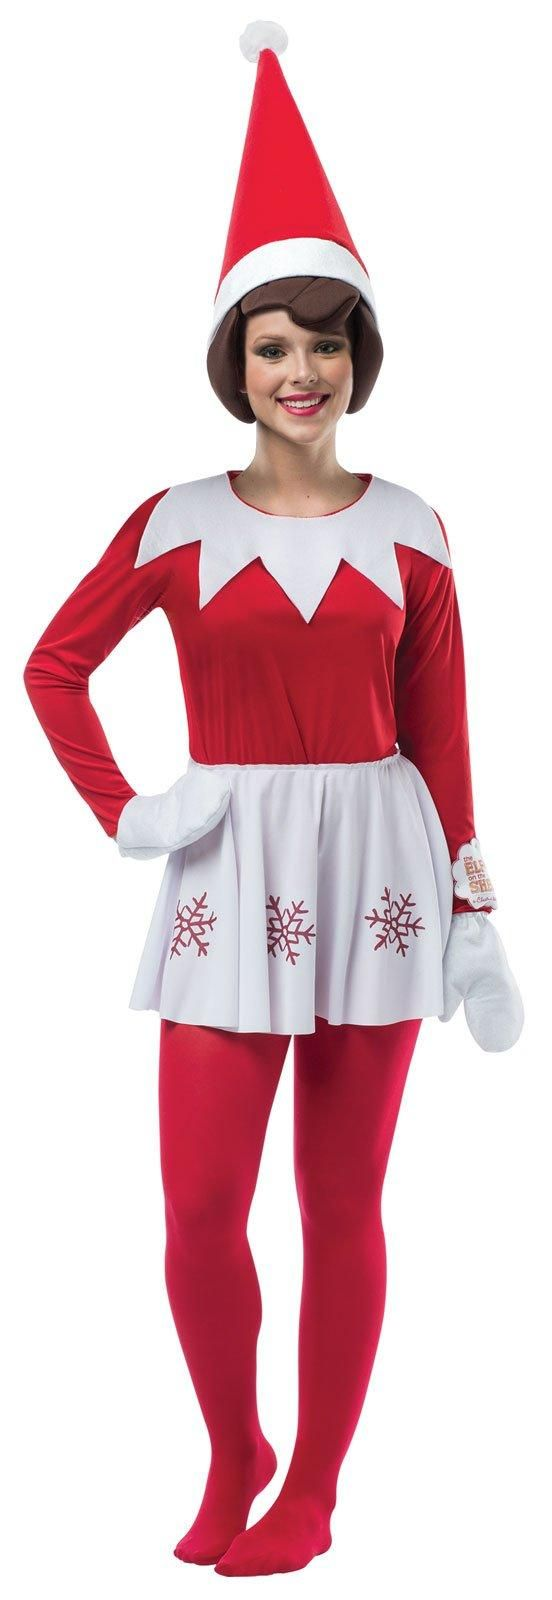 Elf on the Shelf Dress Costume For Women from Buycostumes.com